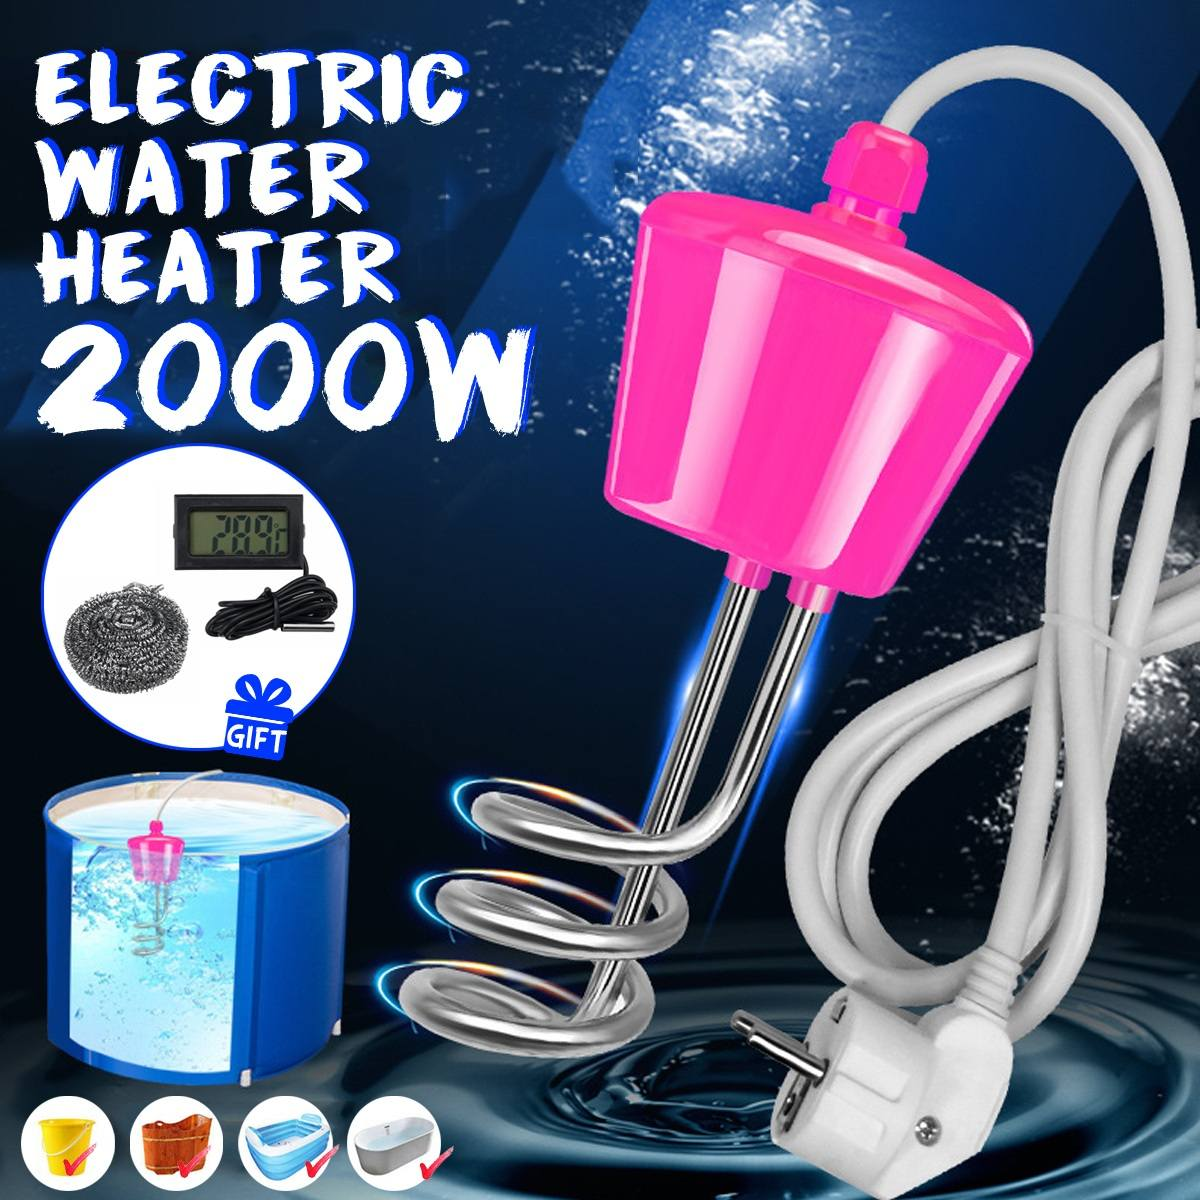 2000W Bathroom Swimming Pool Heater Floating Electric Heater Boiler Water Heating Portable Immersion Suspension EU 3 Meter Cable